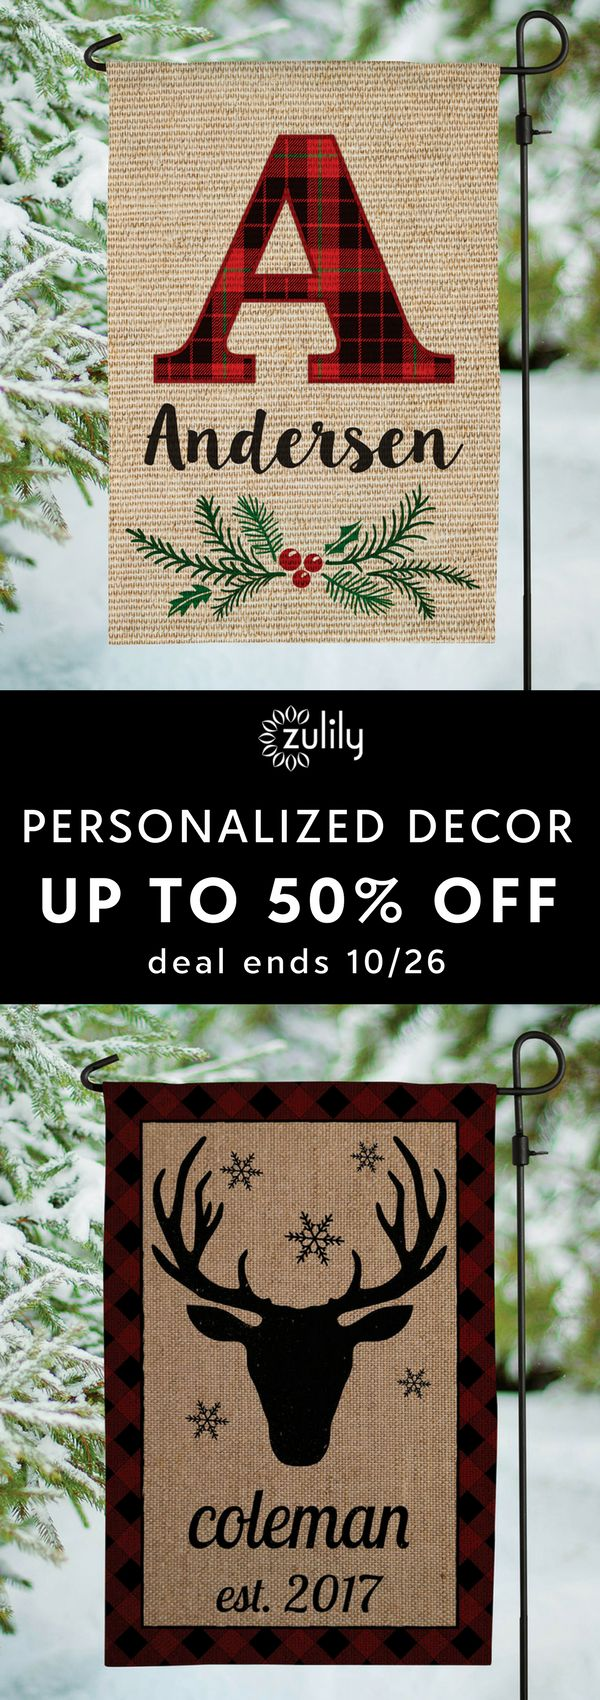 Sign up to shop personalized home decor, up to 50% off. You're set to spruce up the home for the holidays, but you're missing a key ingredient — personalized décor. Shop outdoor flag signs, wall art, ornaments, mugs, and more to spread good cheer. Deal ends 10/26.